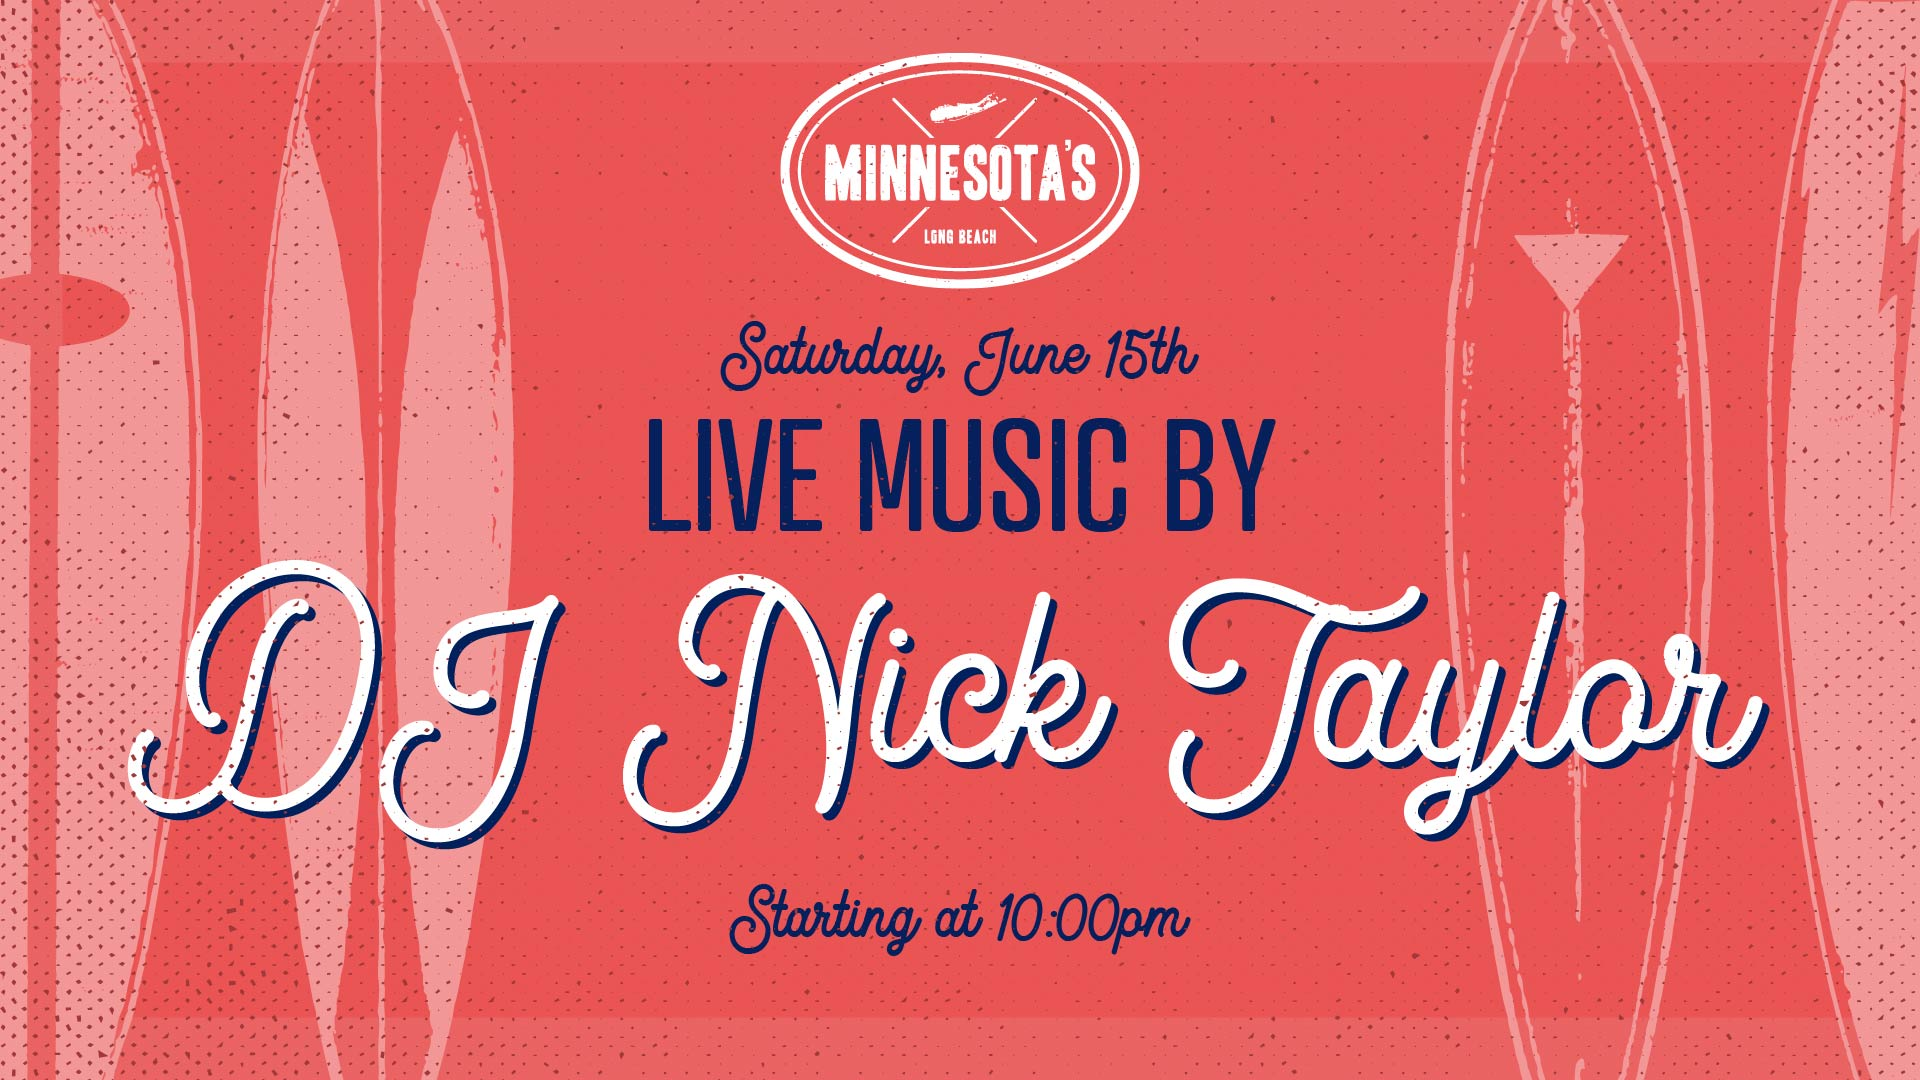 flyer for live music by DJ nick taylor at minnesotas on june 15th at 10pm